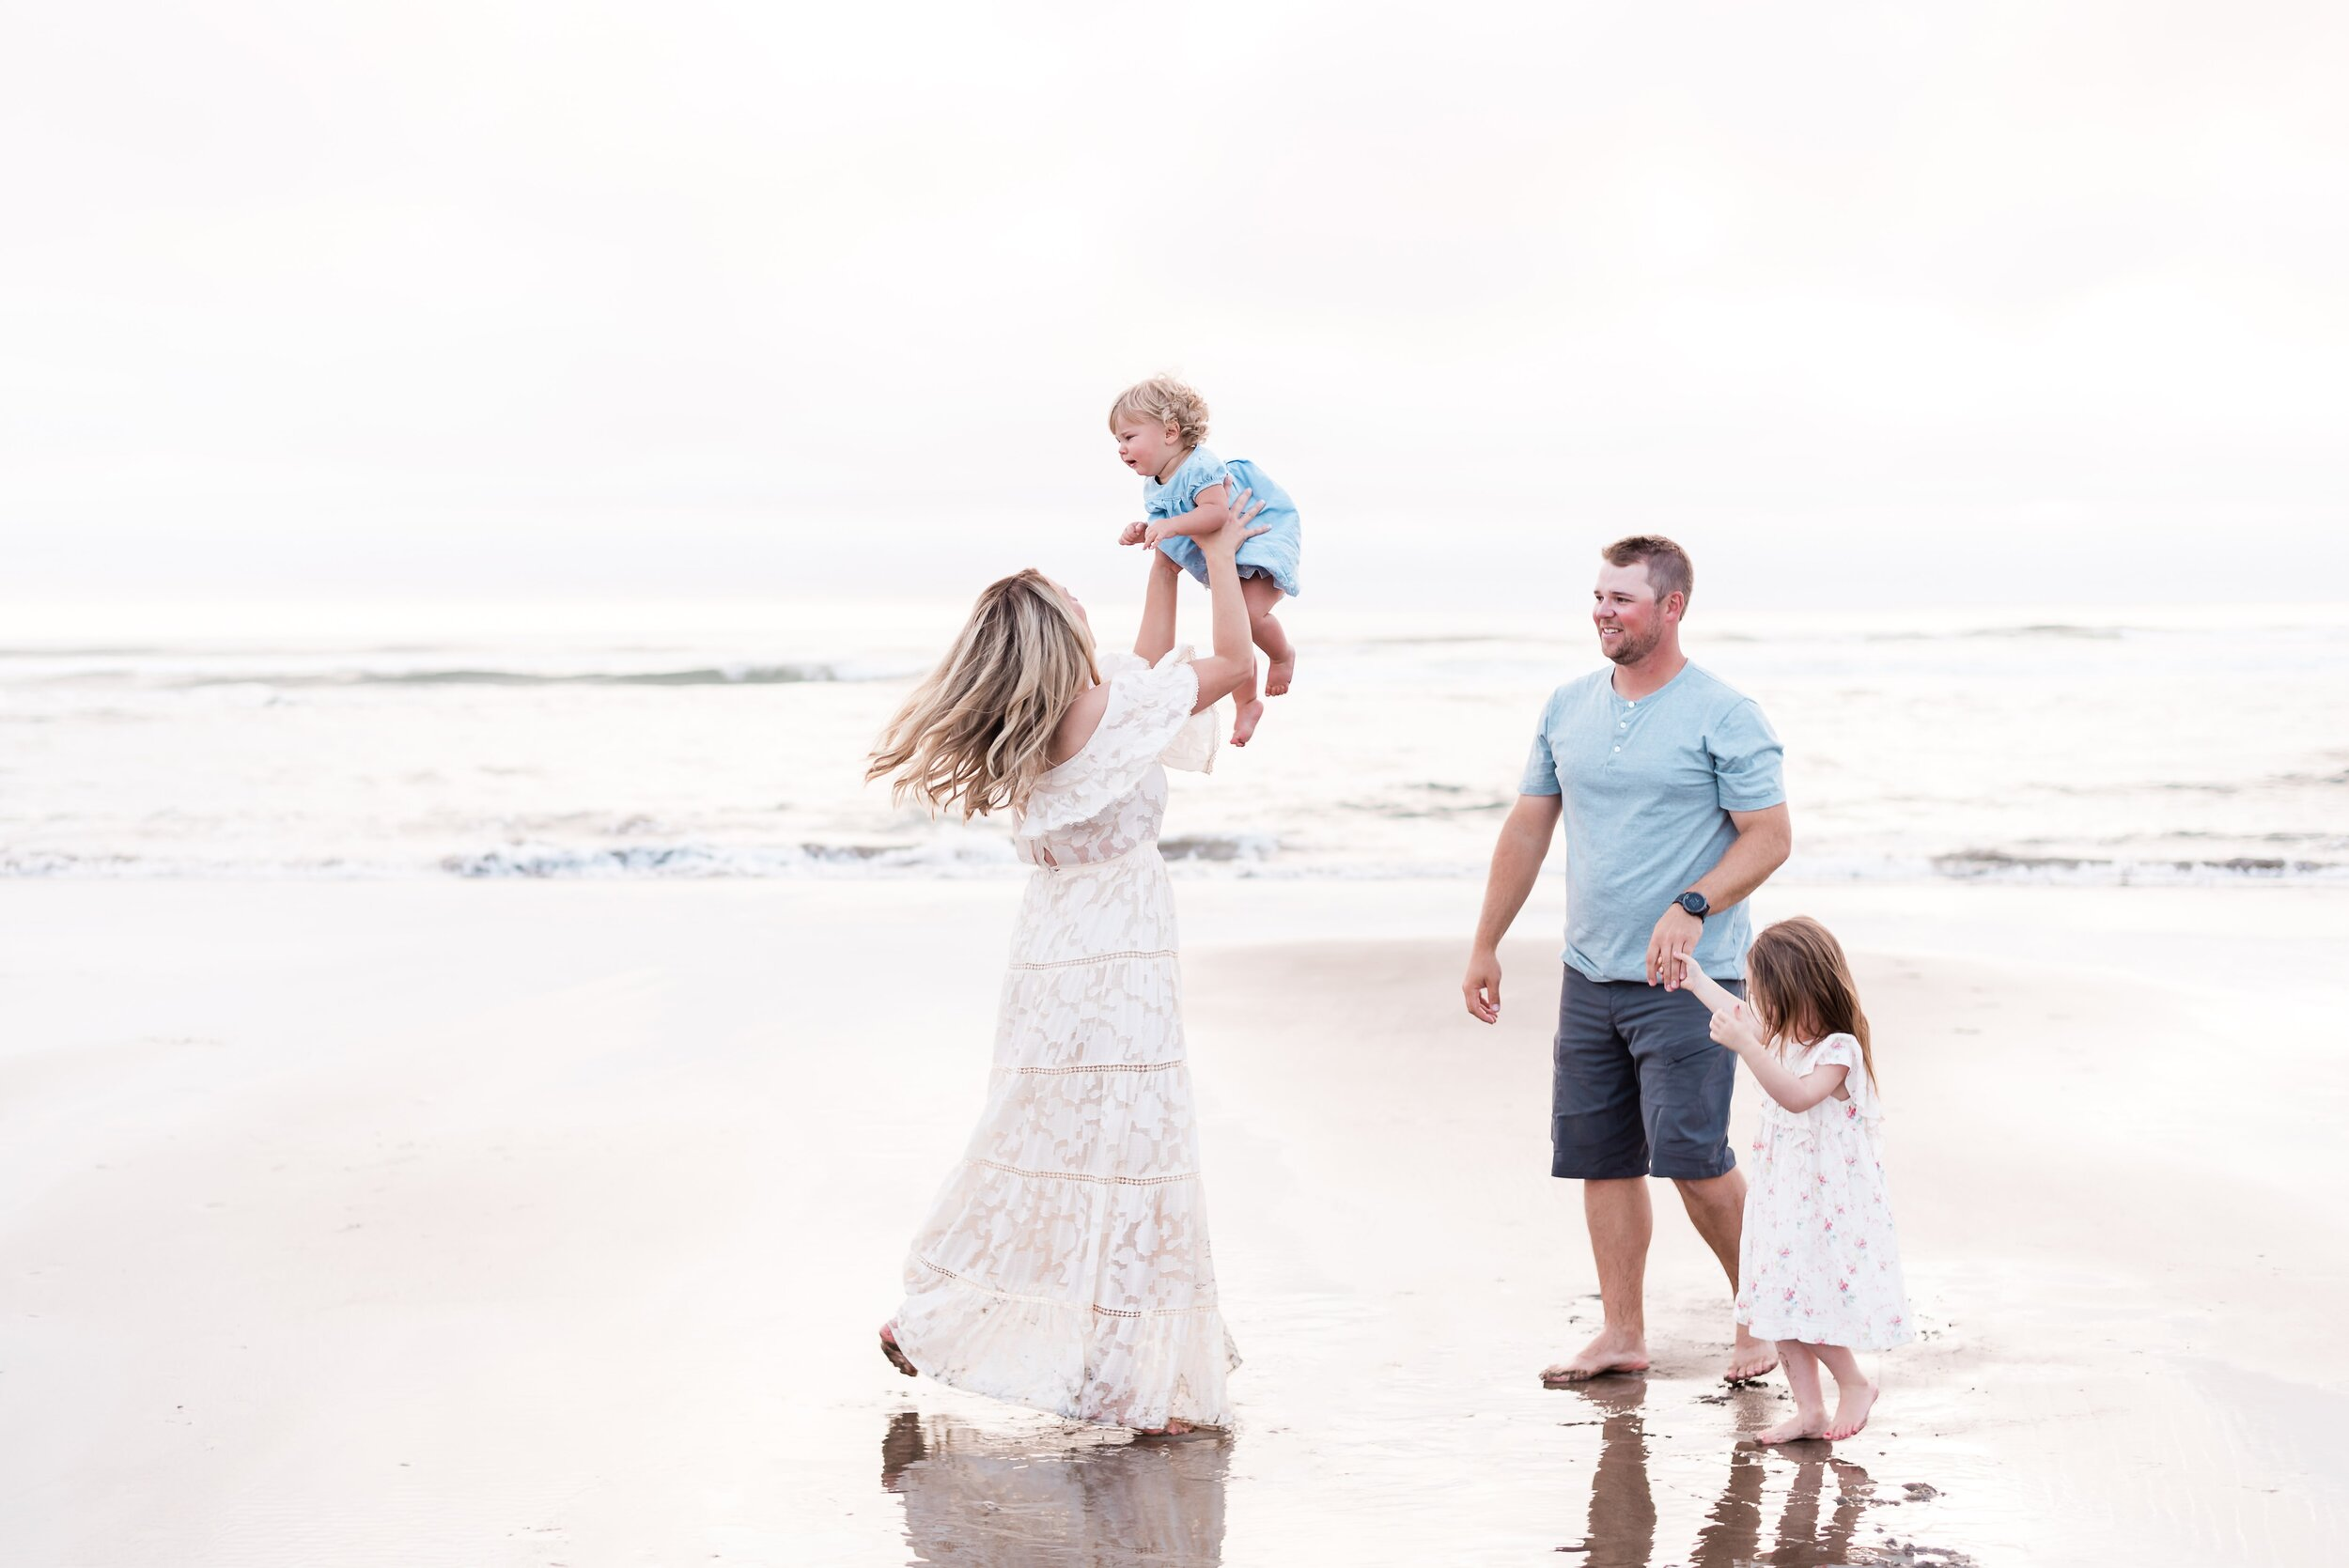 Family photos at the beach in Manzanita, Oregon |Oregon Coast family photographer Elizabeth Hite Photography| Family Beach Photo Ideas